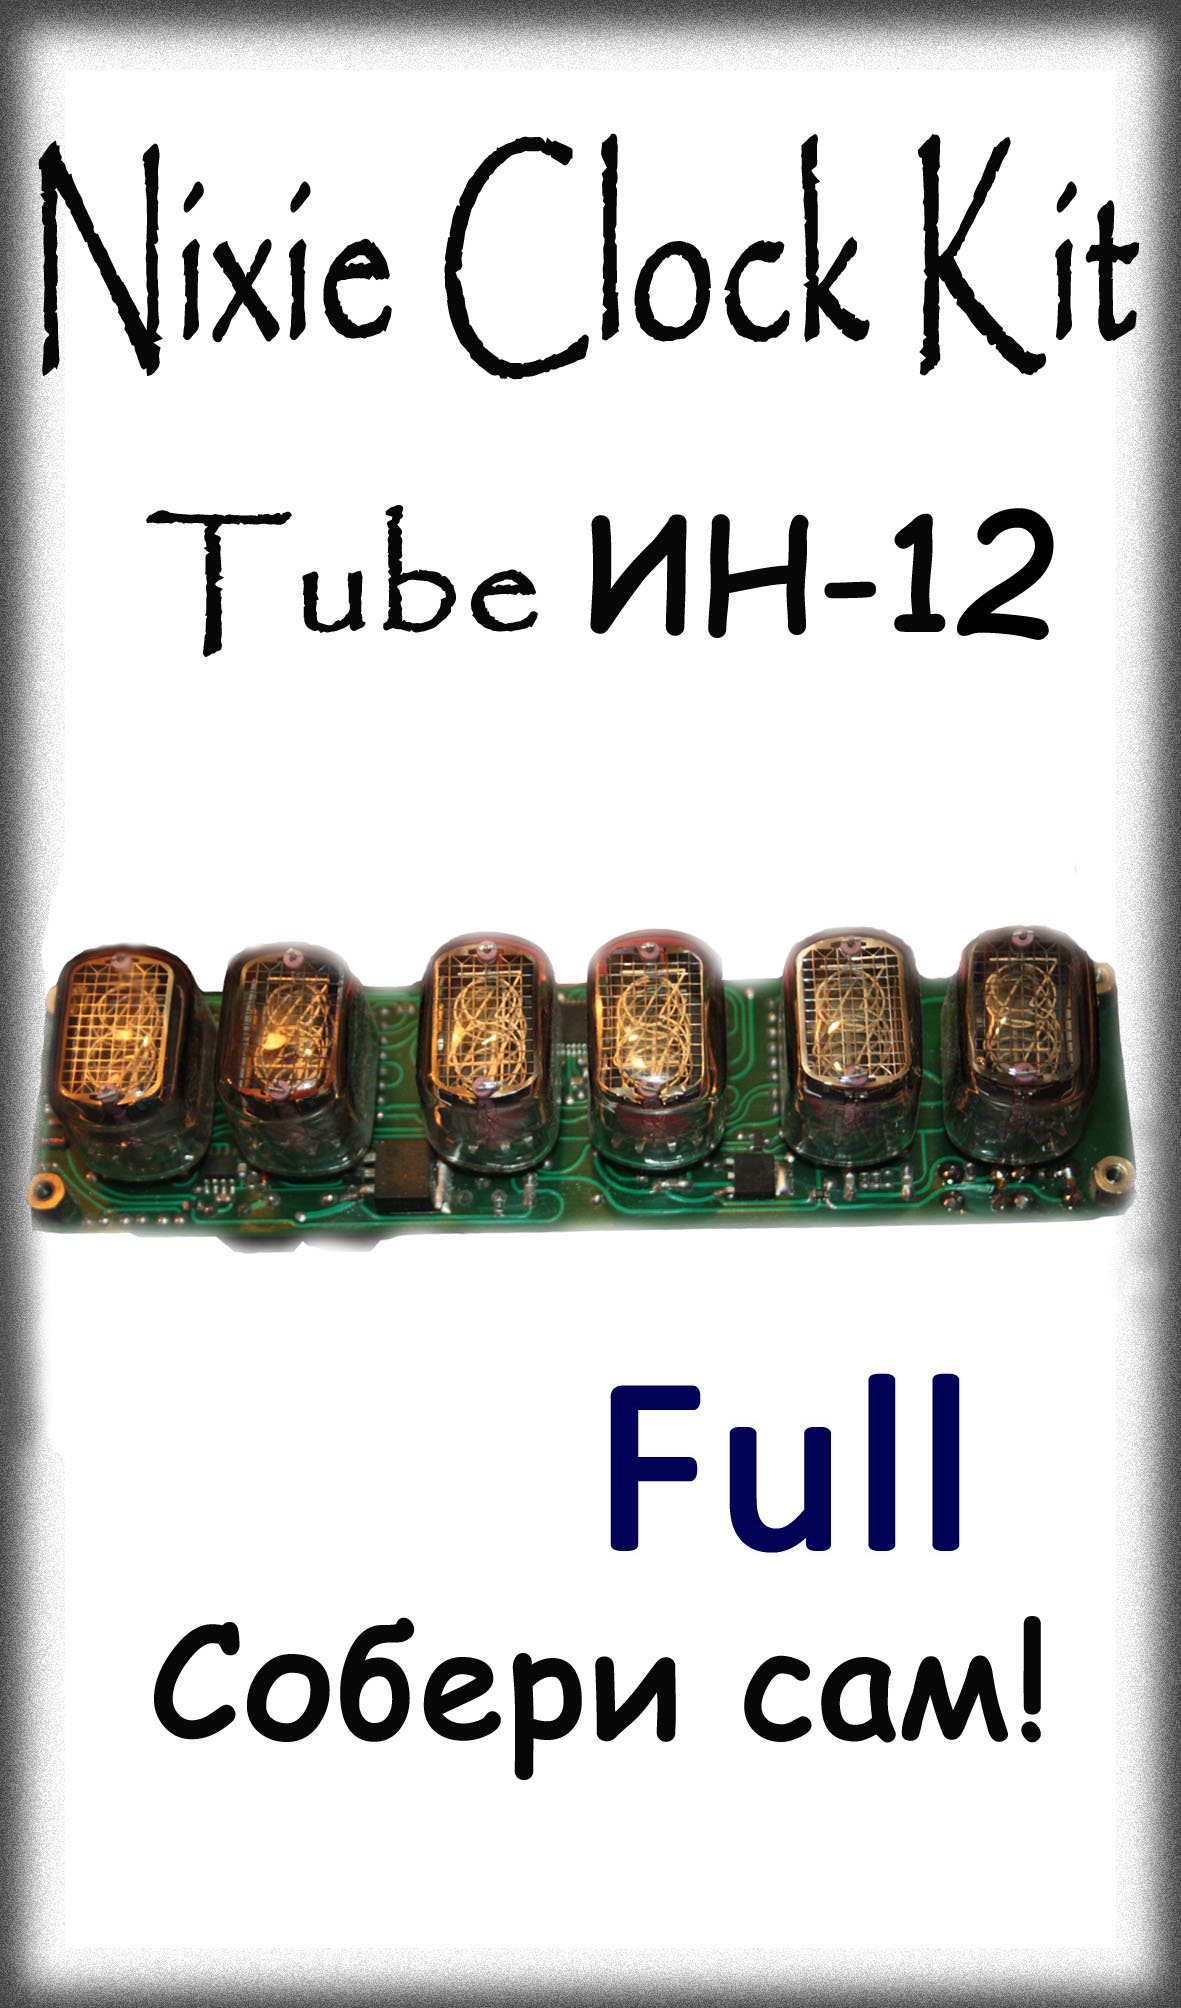 Nixie Clock Kit IN12 6-Tube Full